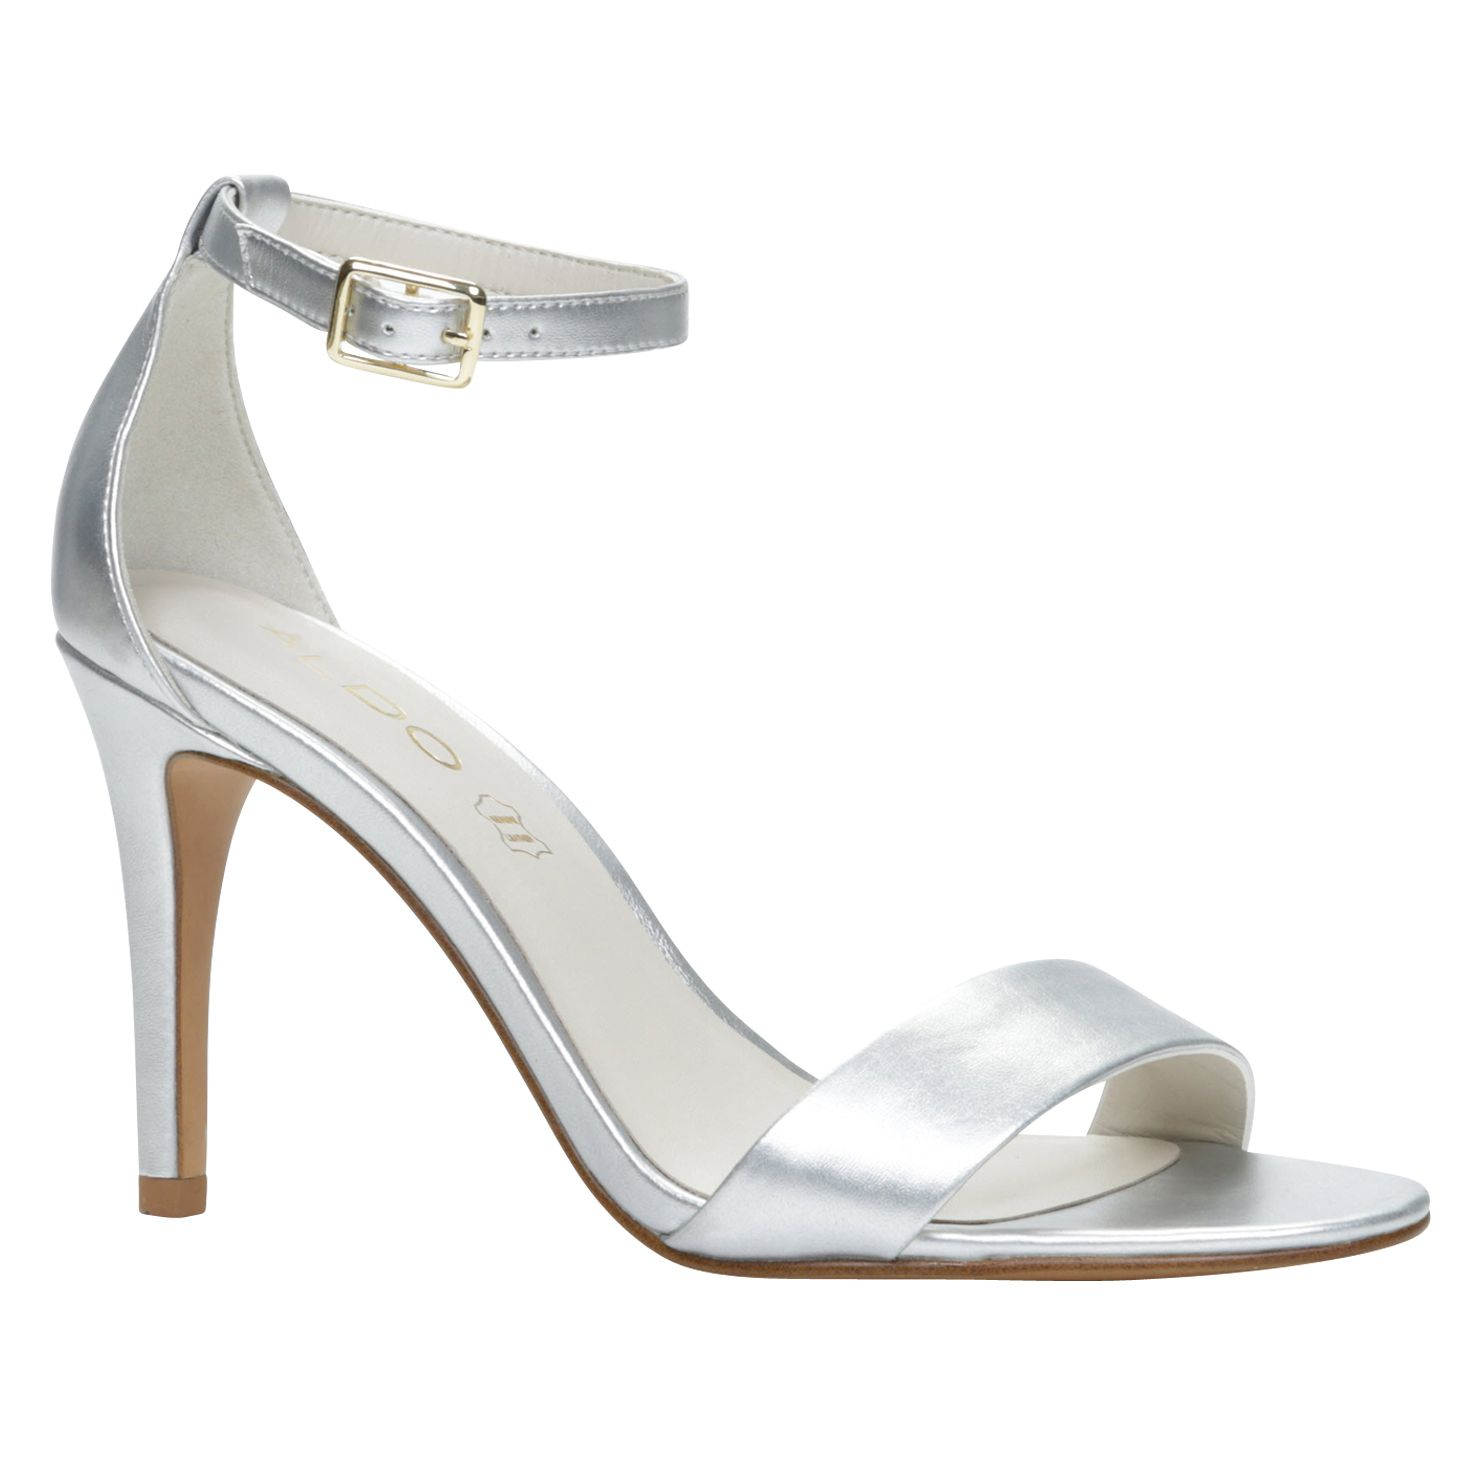 Ibenama ankle strap high heel sandals